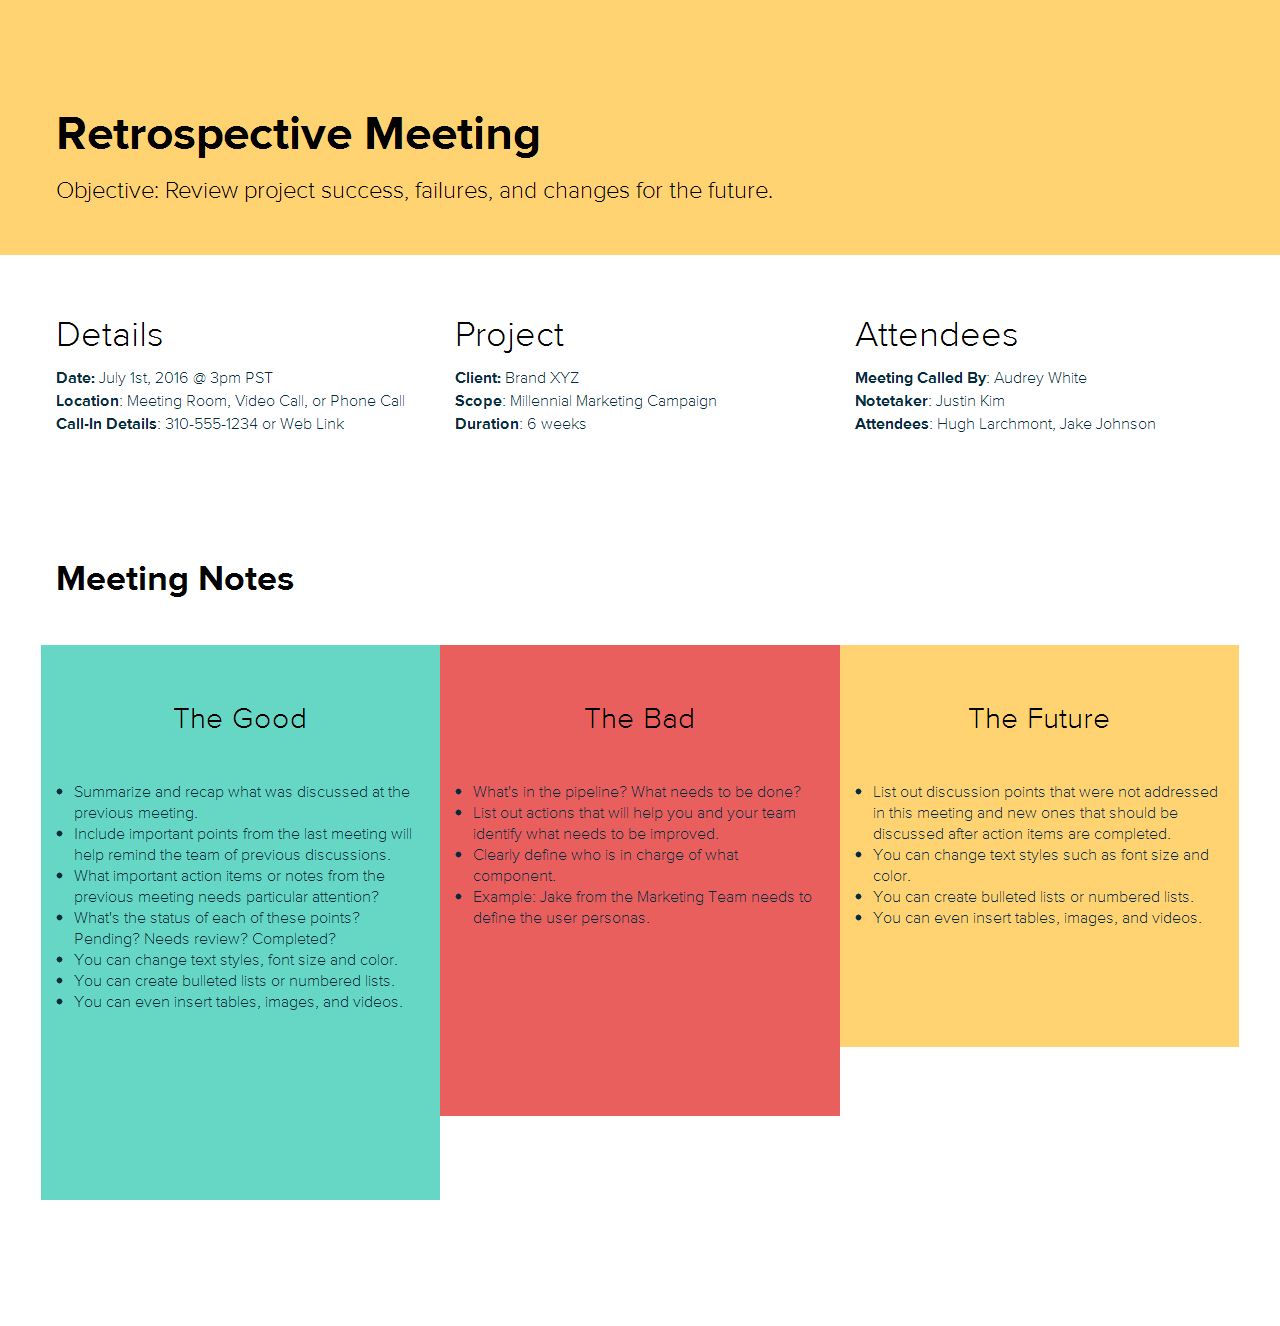 Retro Meeting Agenda Sample By Xtensio  Creating An Agenda Template